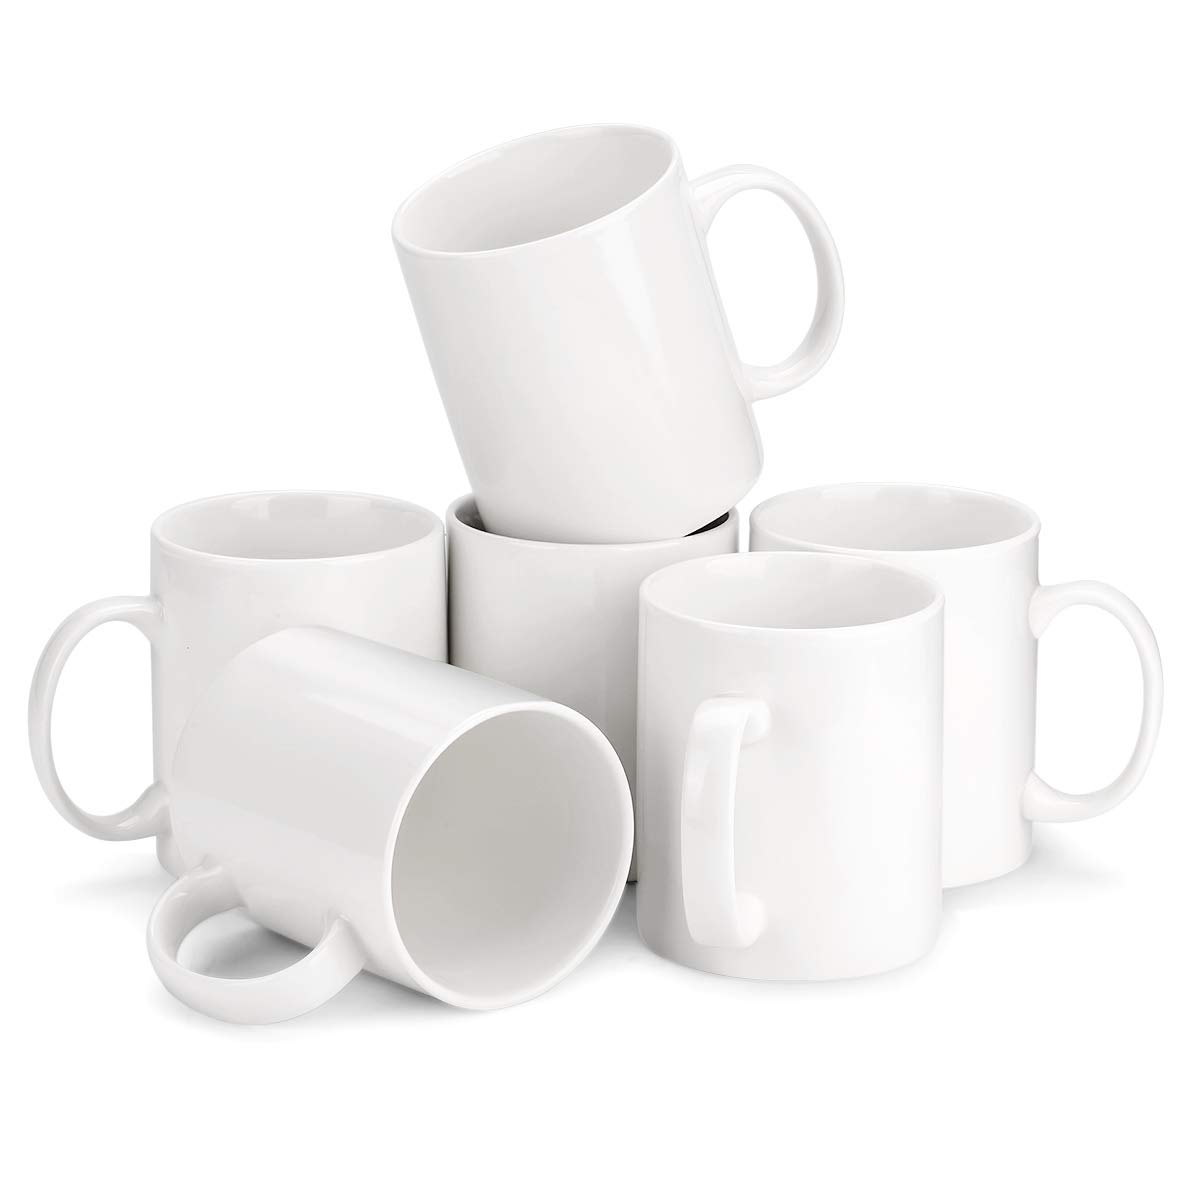 MIWARE 12 Ounce Porcelain Mug Set - 6Packs, Tea and Coffee Mugs, White